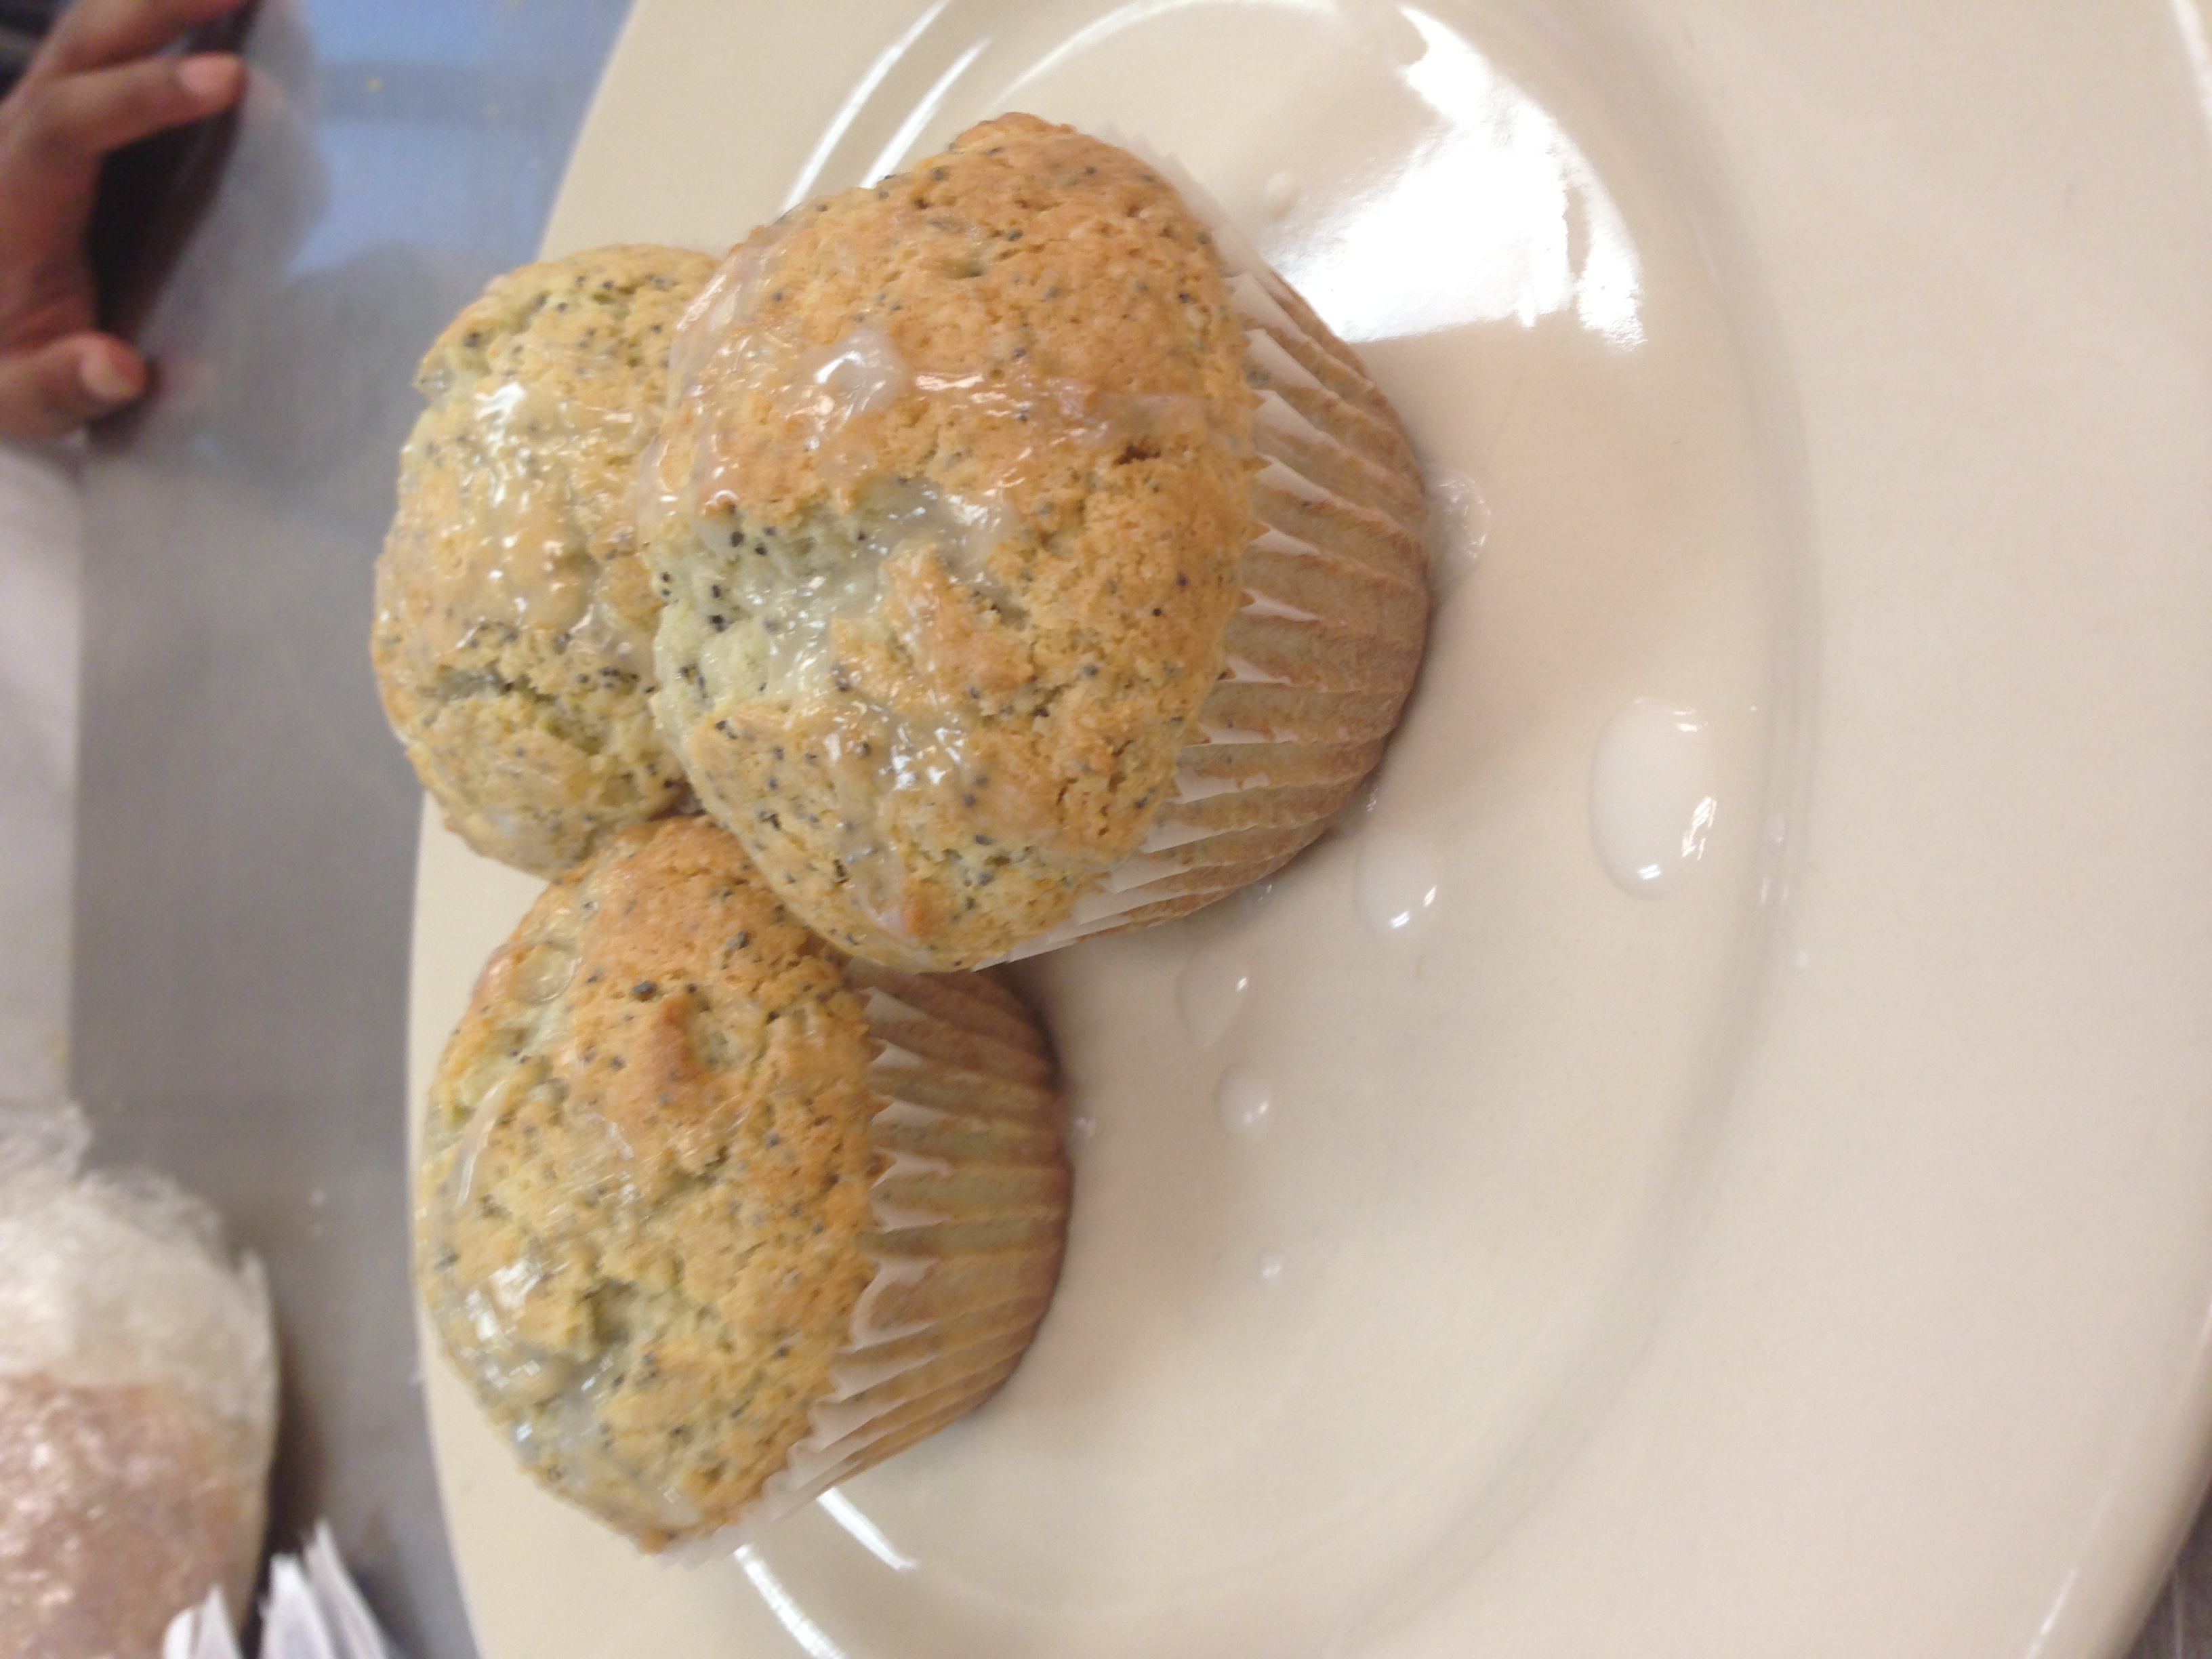 Lemon poppy seed muffins with a lemon glaze